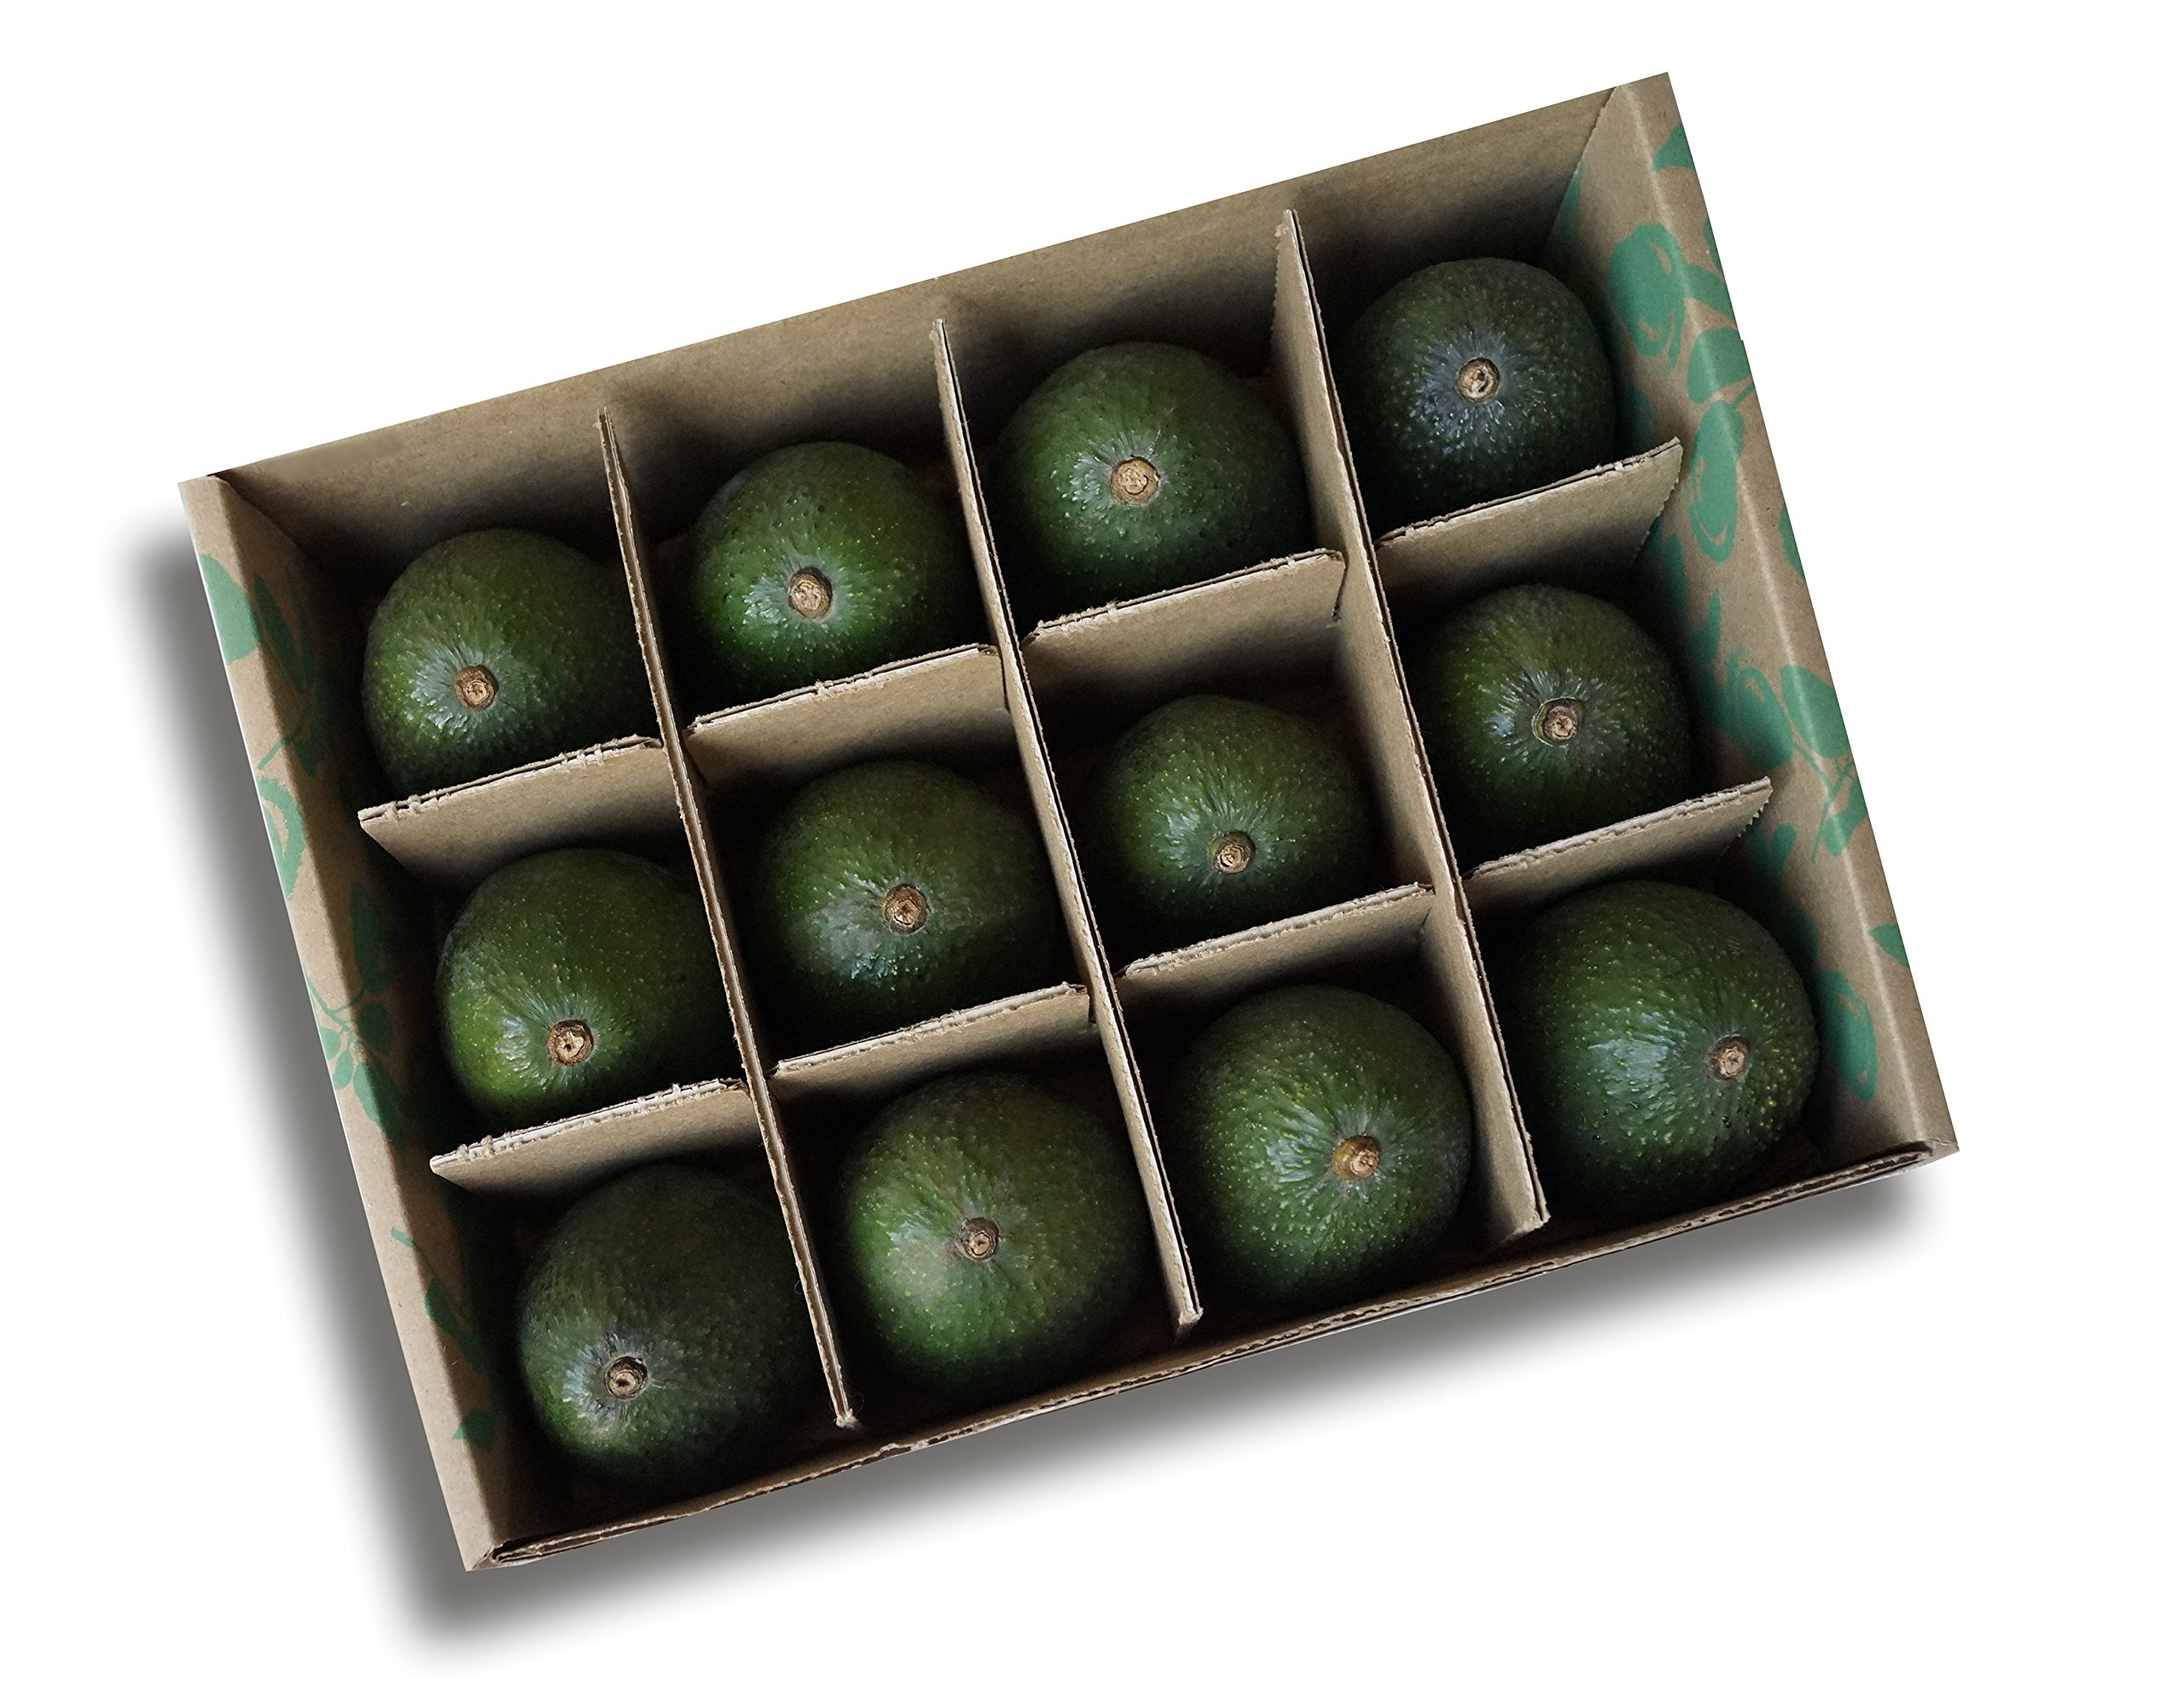 12 Large Organic California Hass Avocados by Avoganic (Image #2)